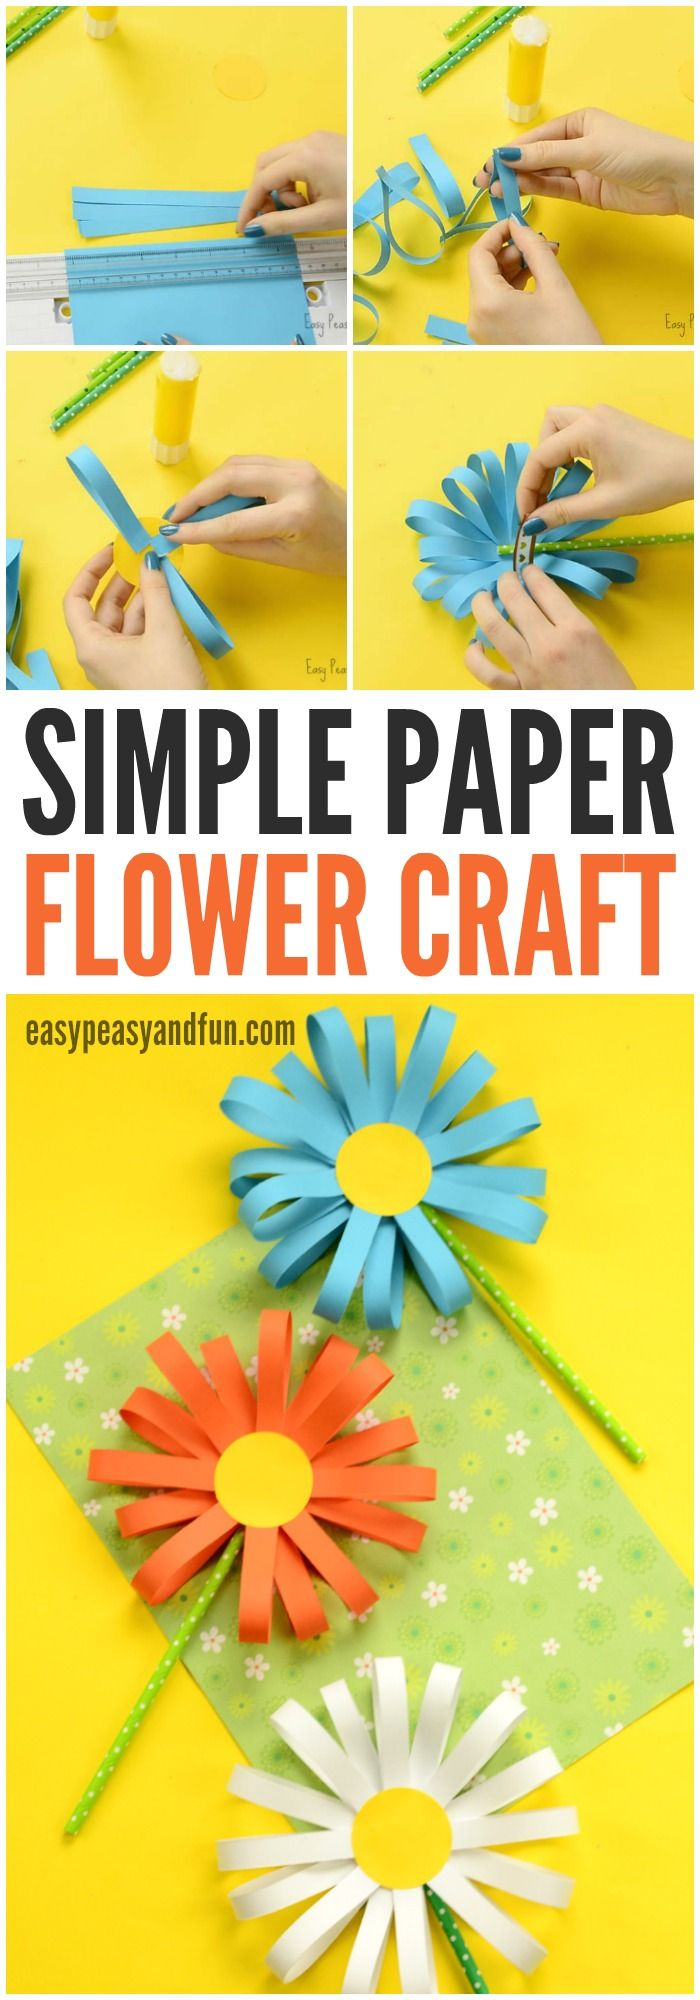 Simple Paper Flower Craft for KIds